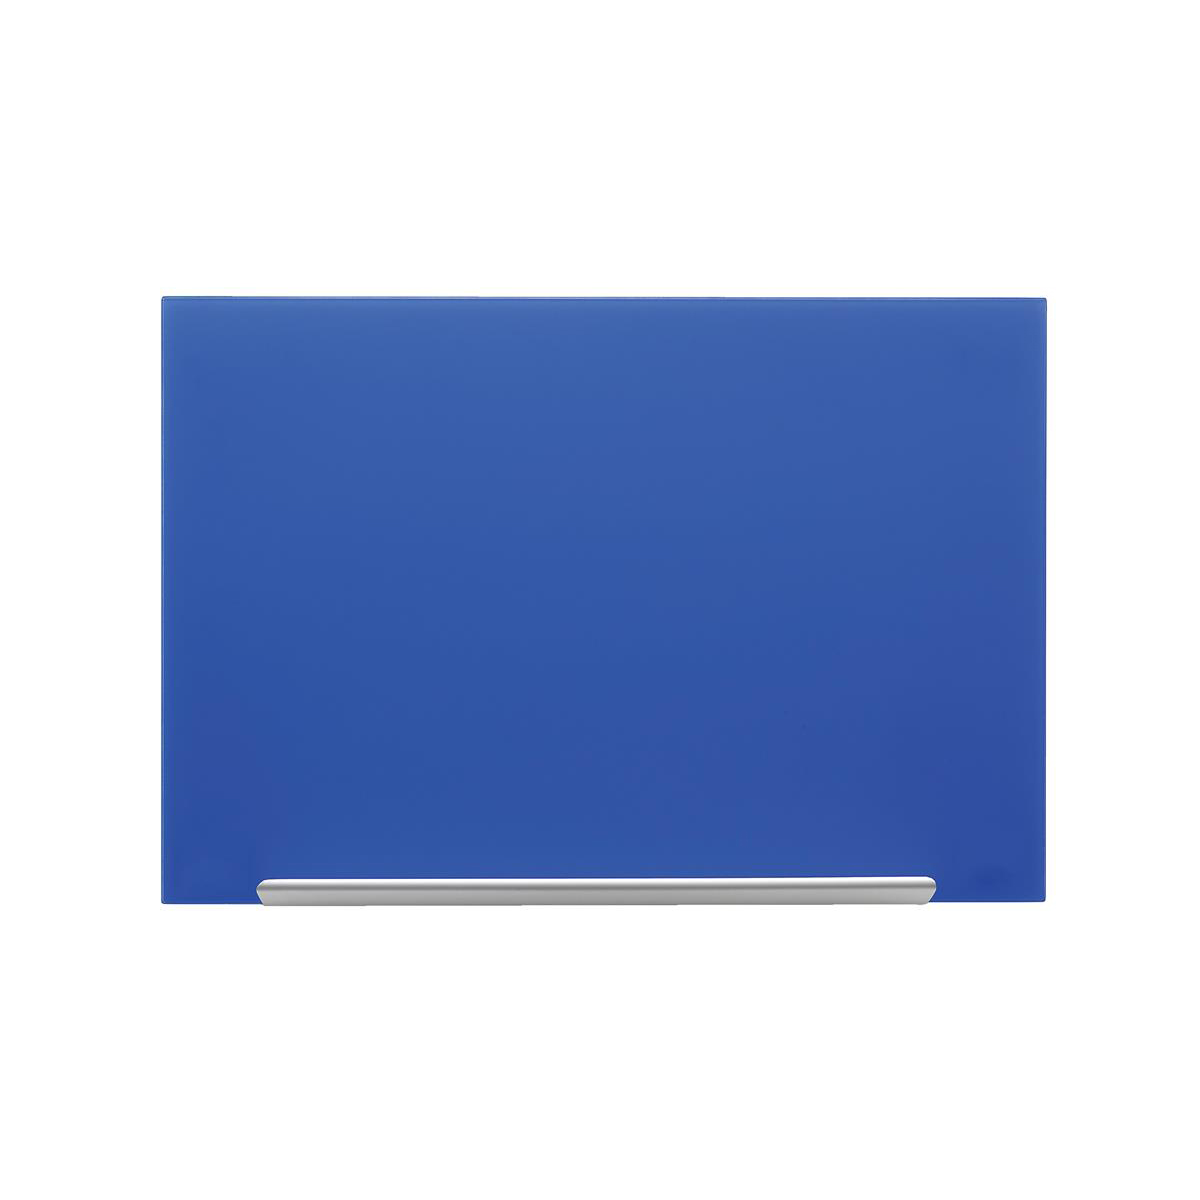 Magnetic Nobo Diamond Glass Board Magnetic Scratch Resistant Fixings Included W1900xH1000mm Blue Ref 1905190